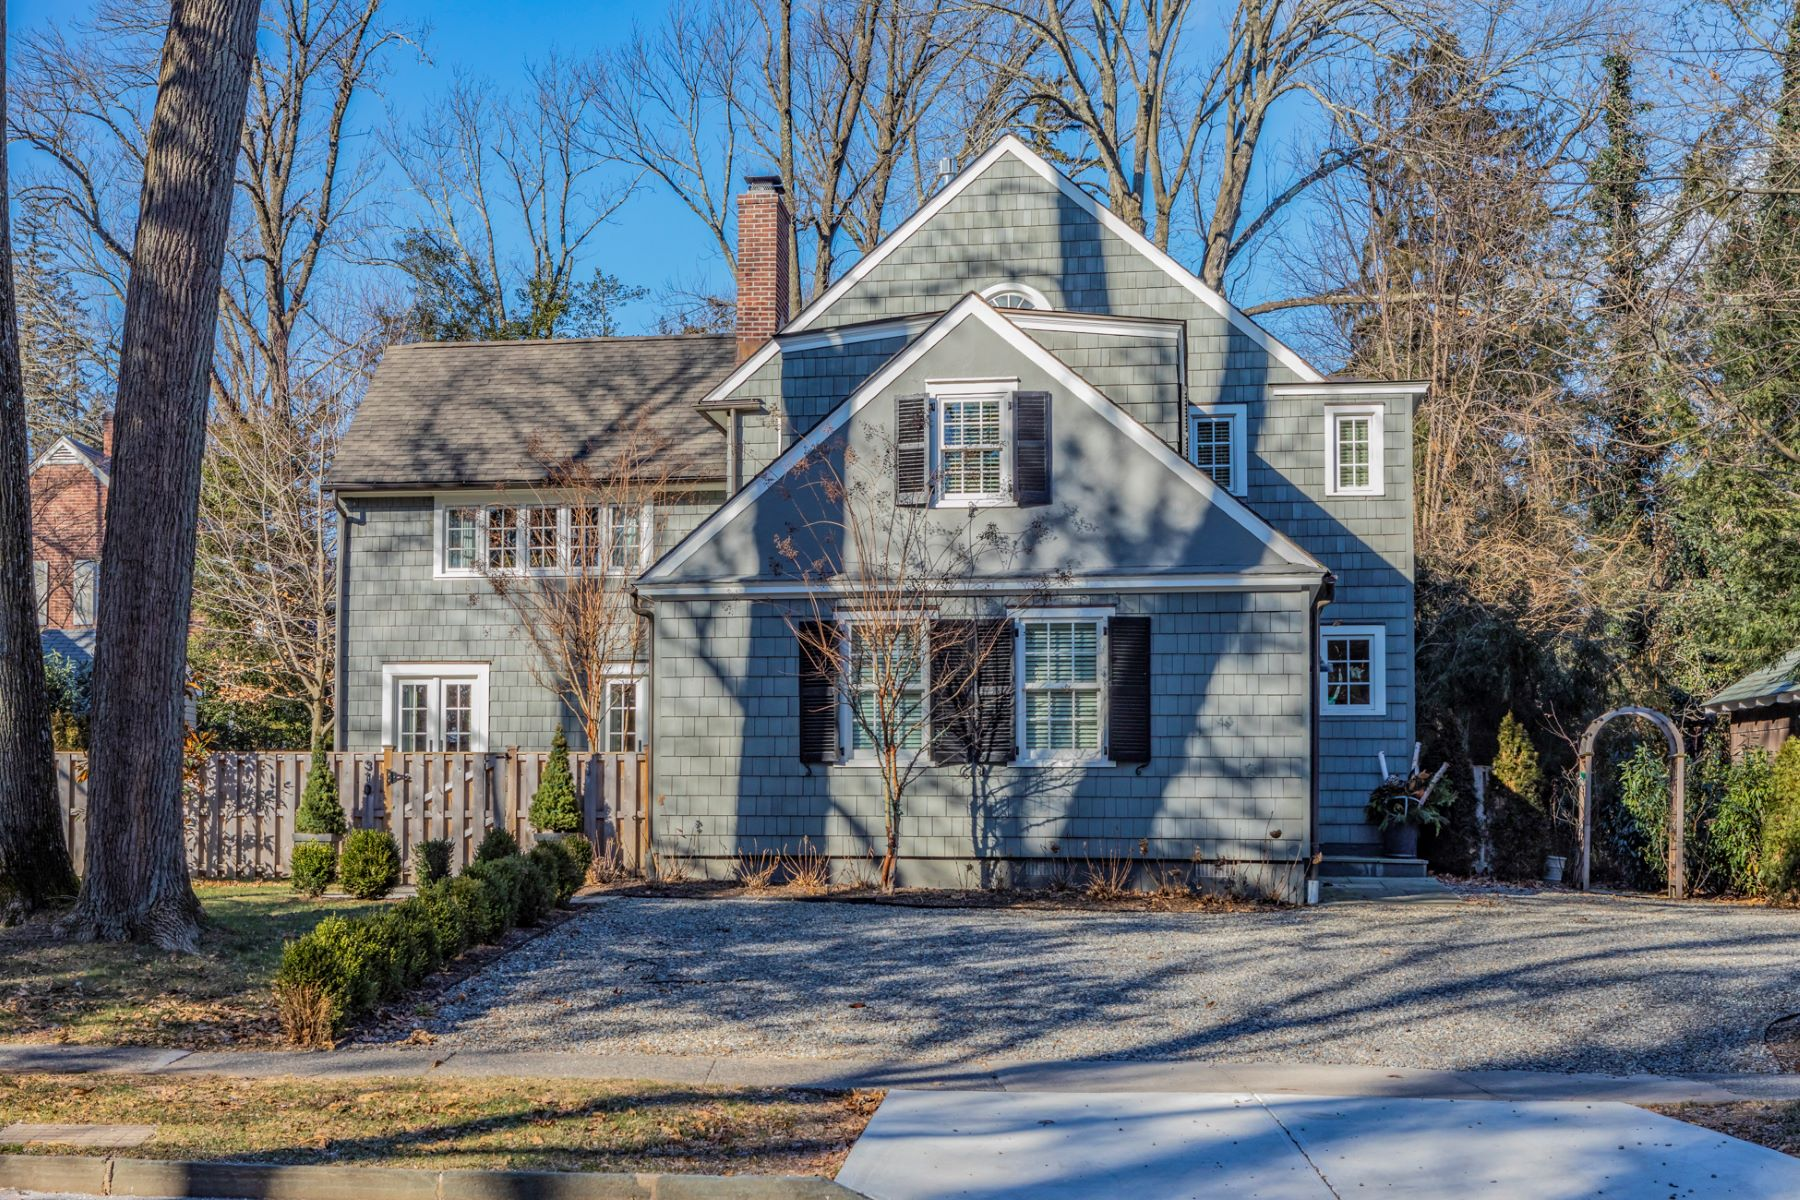 Single Family Home for Sale at Utter Perfection on Historic Nassau Street 310 Nassau Street, Princeton, New Jersey 08540 United StatesMunicipality: Princeton